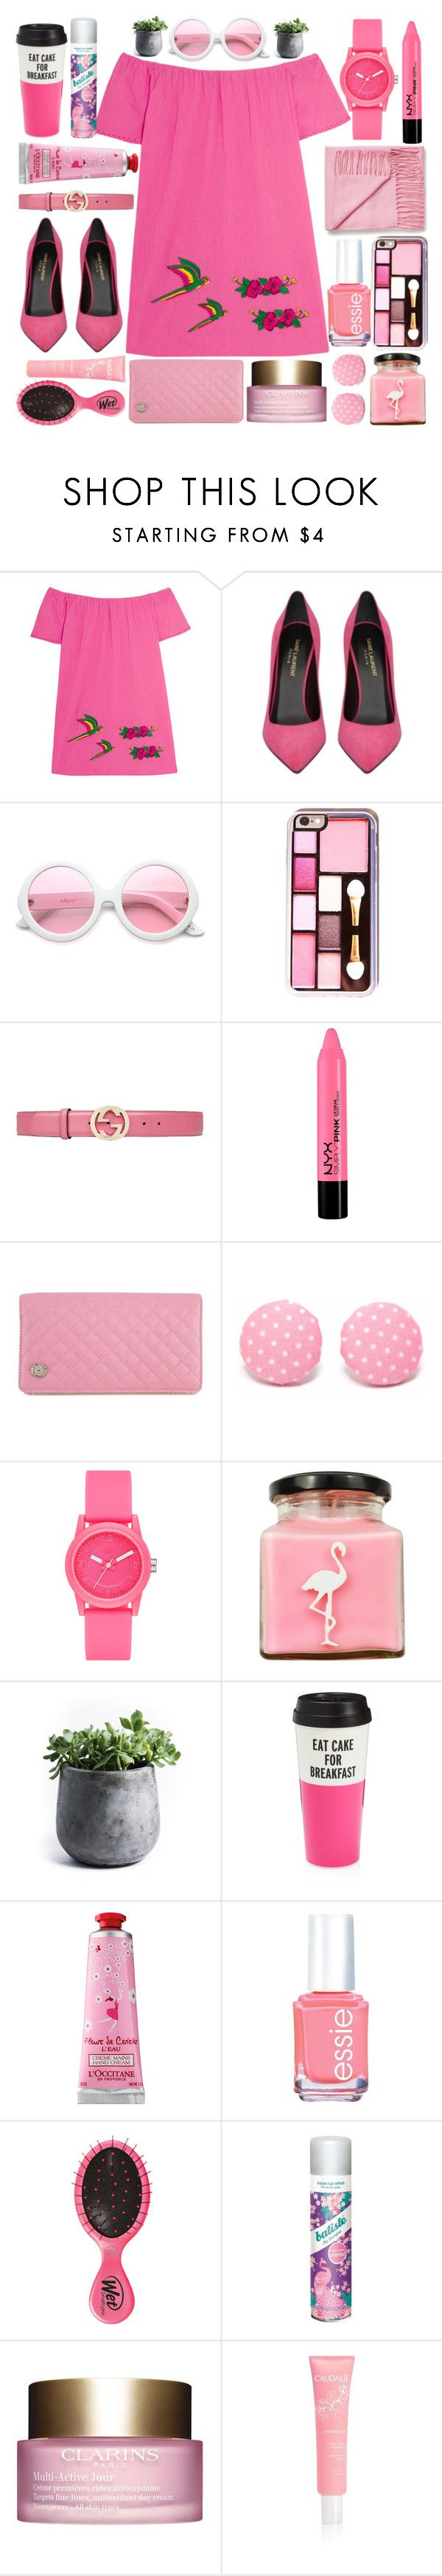 """Monday Pink"" by norairh ❤ liked on Polyvore featuring Sensi Studio, Yves Saint Laurent, ZeroUV, Gucci, Chanel, Laurafallulah, Skechers, Flamingo Candles, My Spirit Garden and Kate Spade"